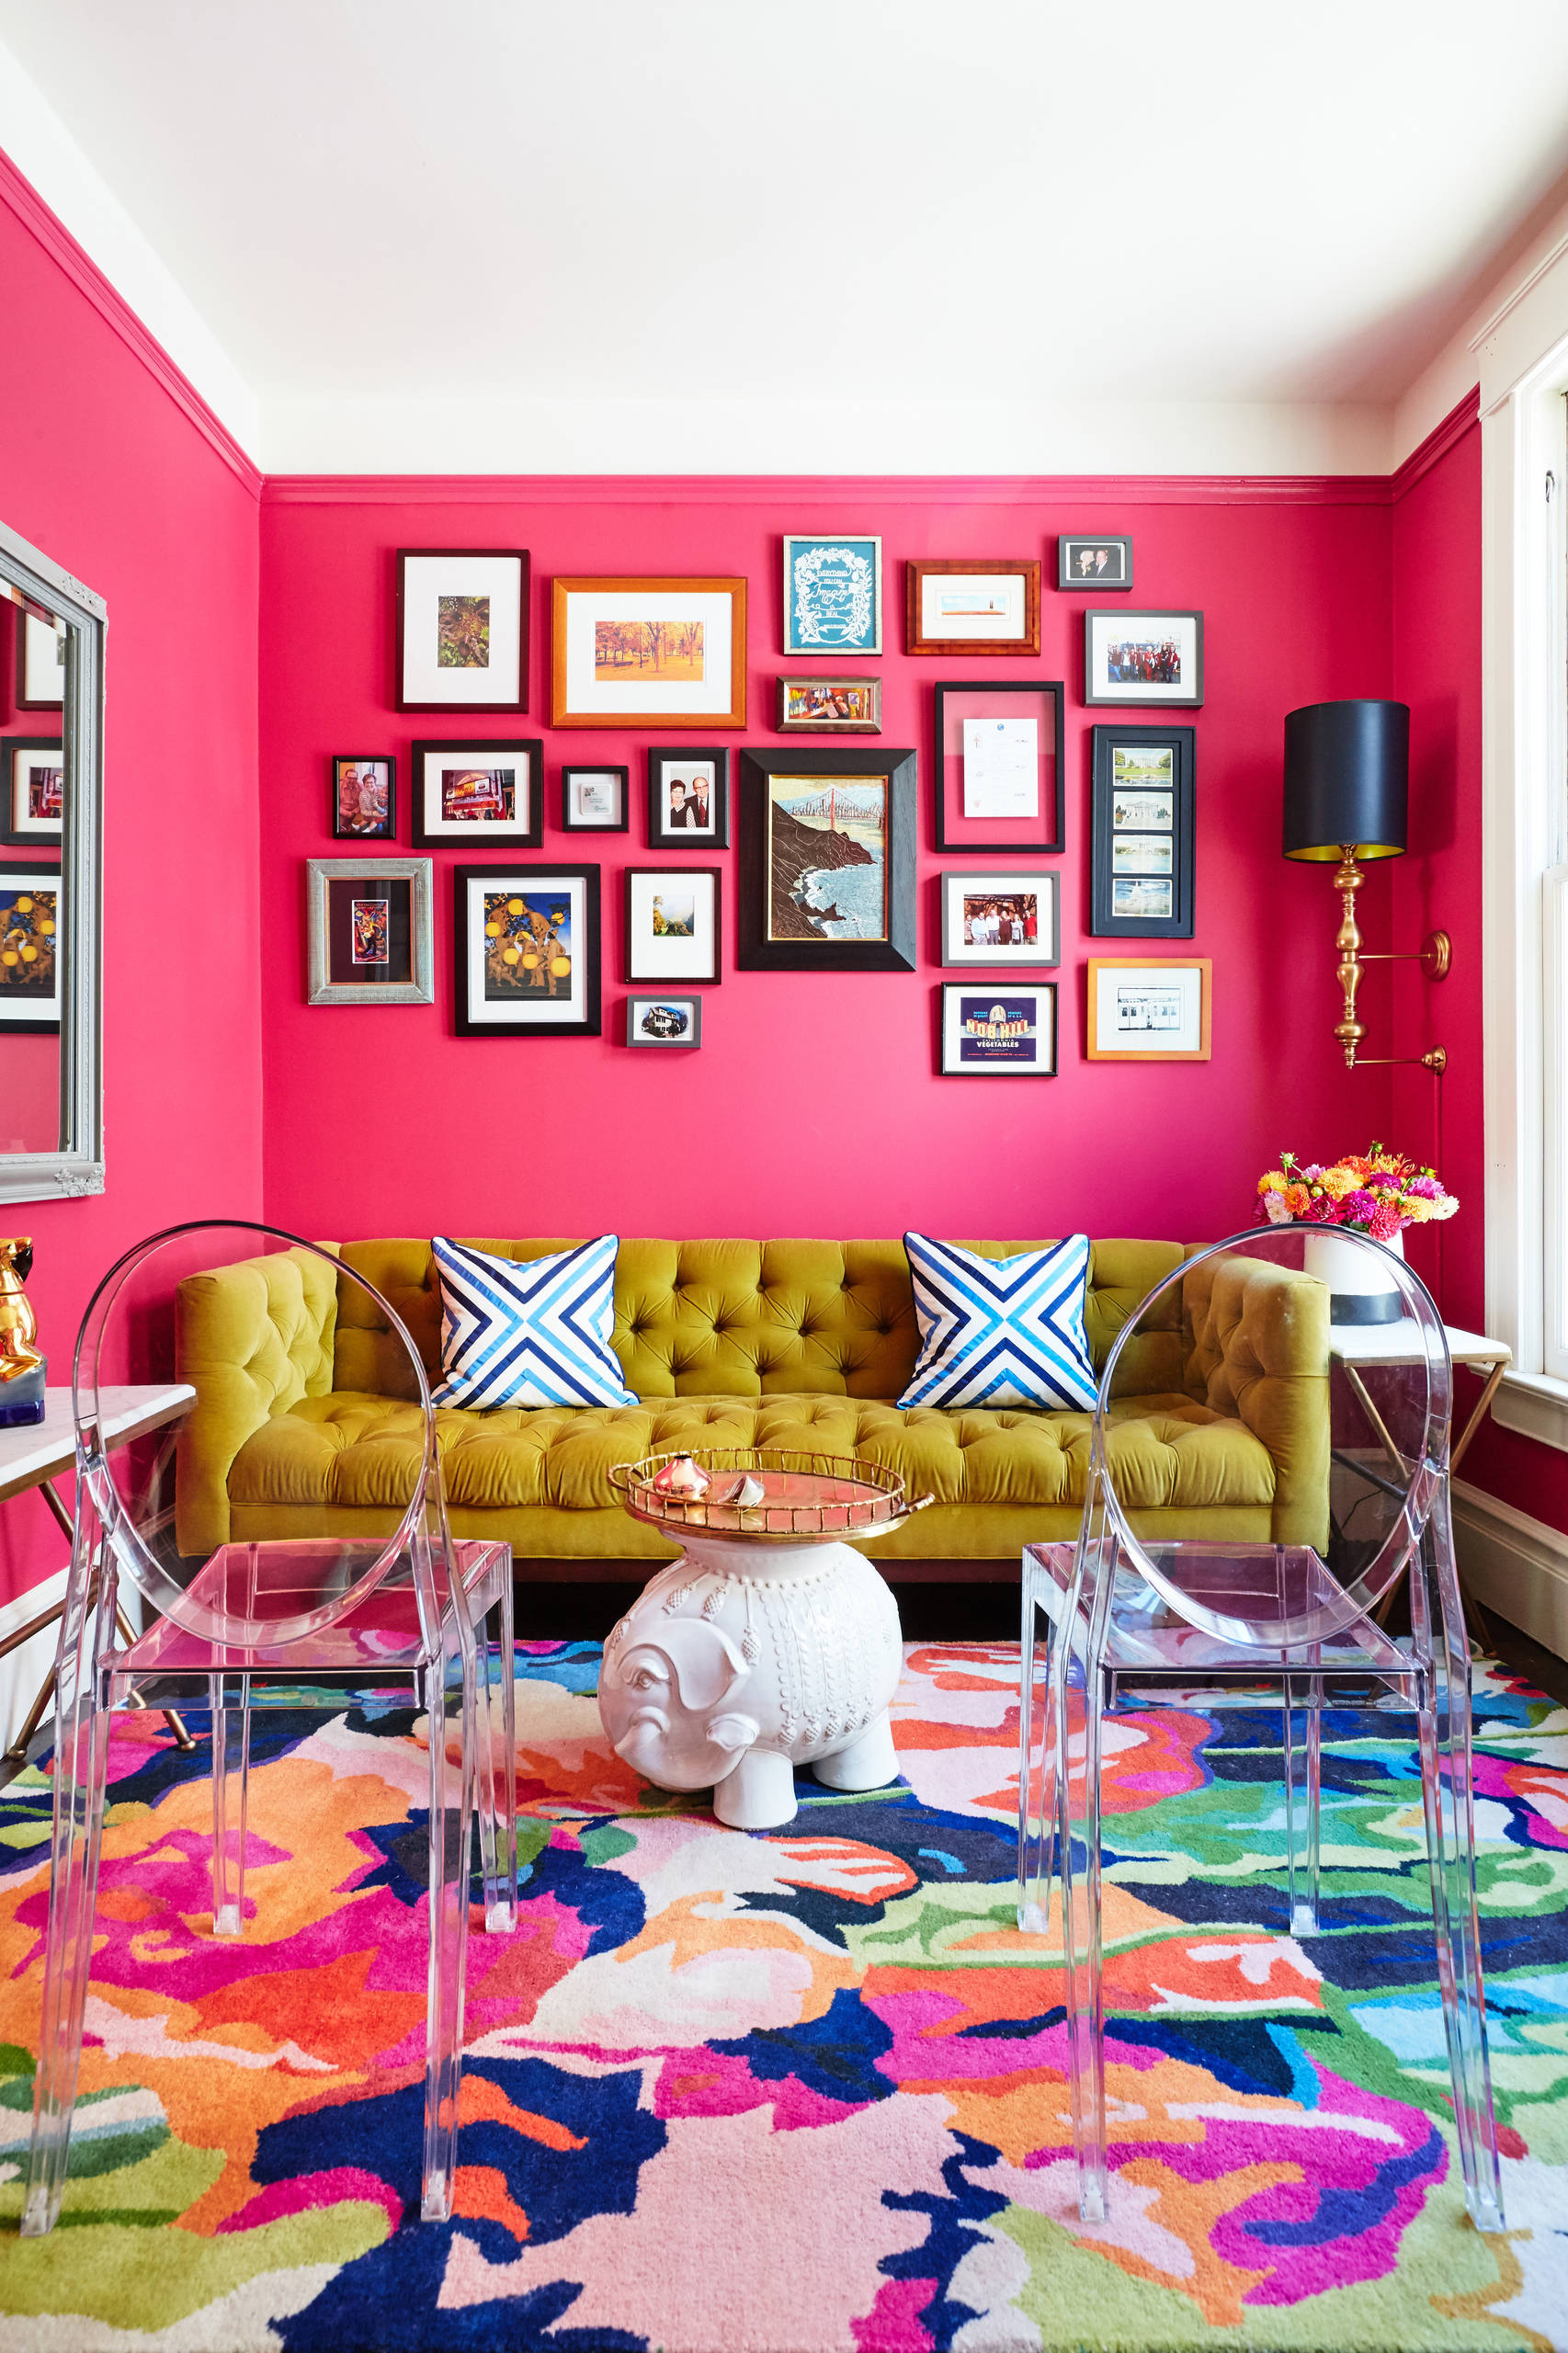 75 Beautiful Living Room With Pink Walls Pictures Ideas May 2021 Houzz